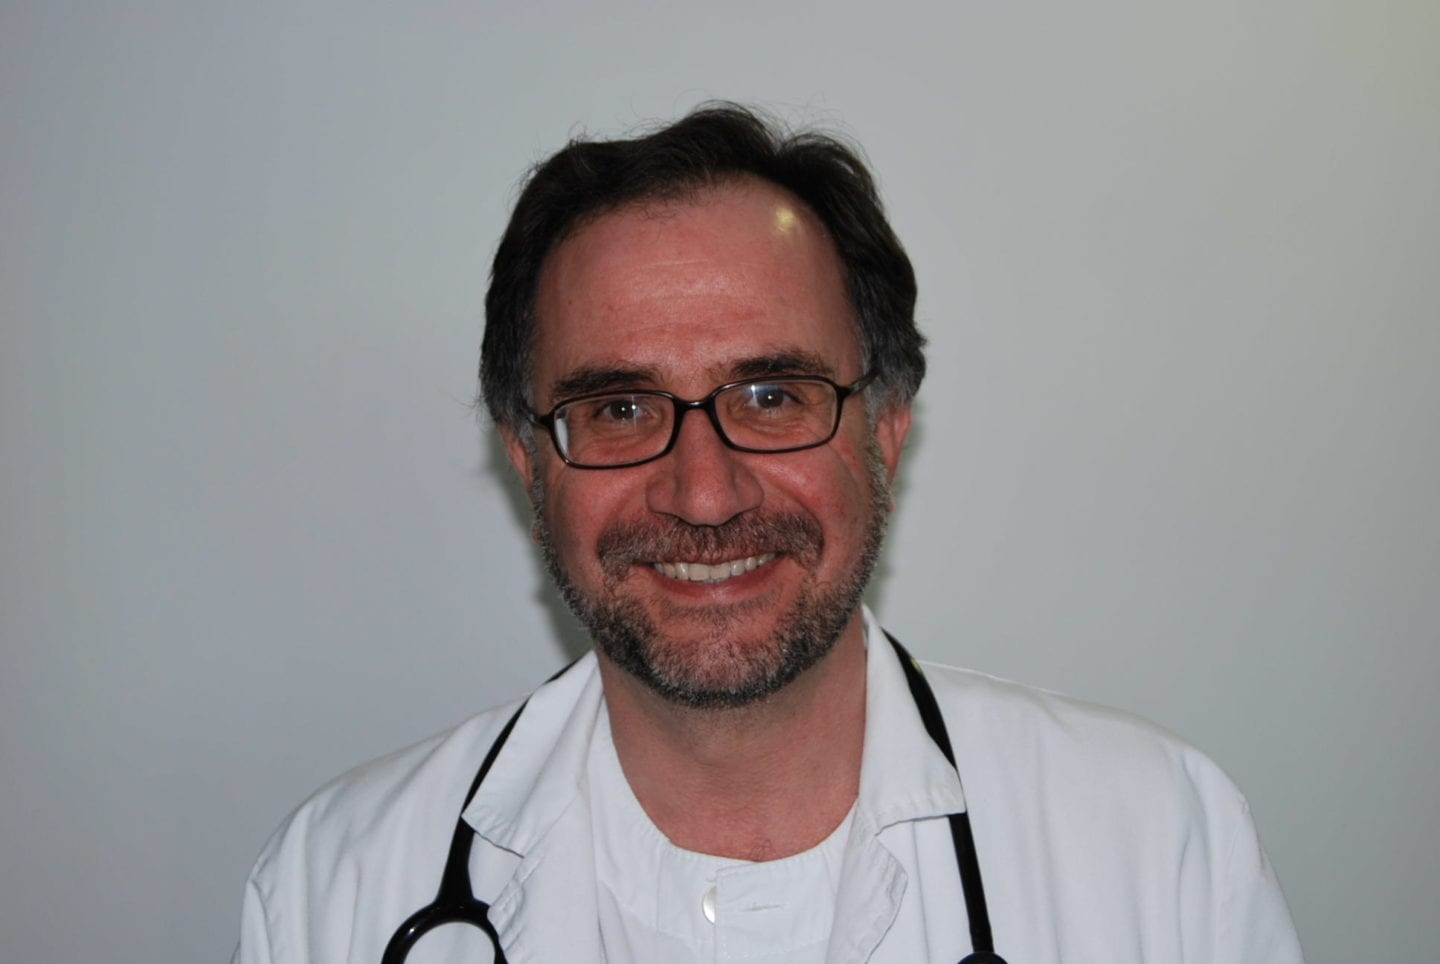 Dr. Miguel Ángel Ciscar, pulmonologist from the Dénia Health Department